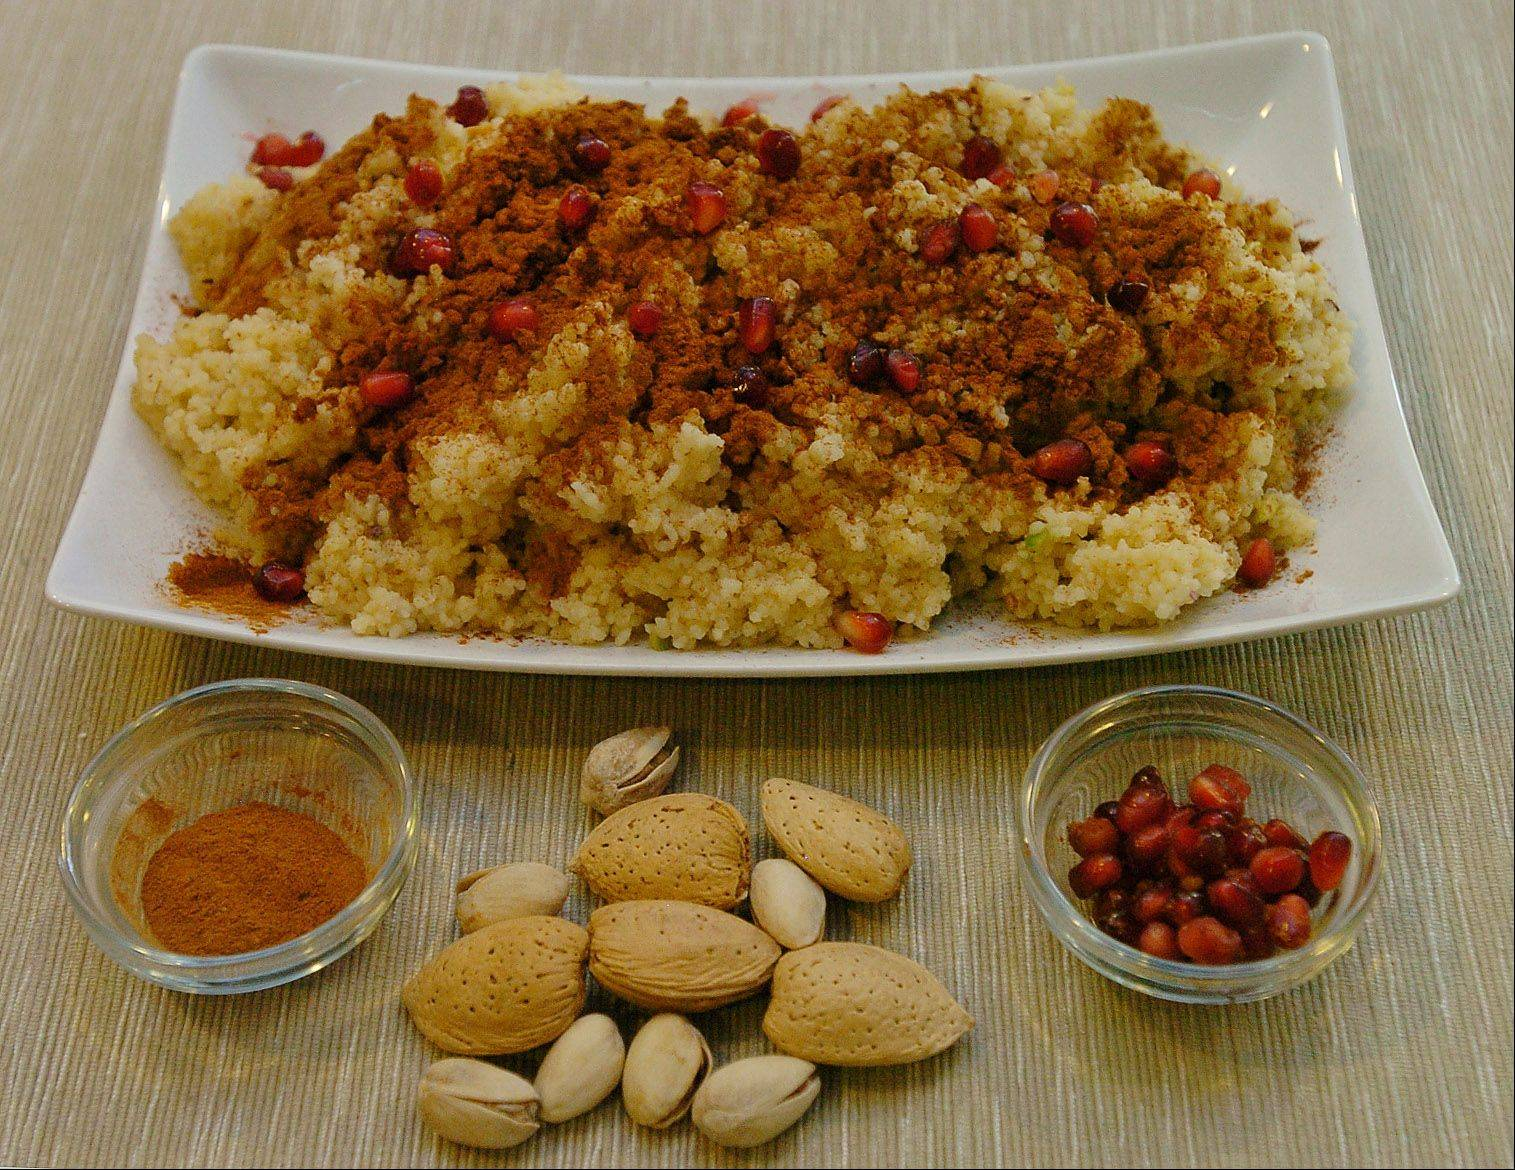 Heart-healthy pistachios and almonds make this couscous a nutritious dish.